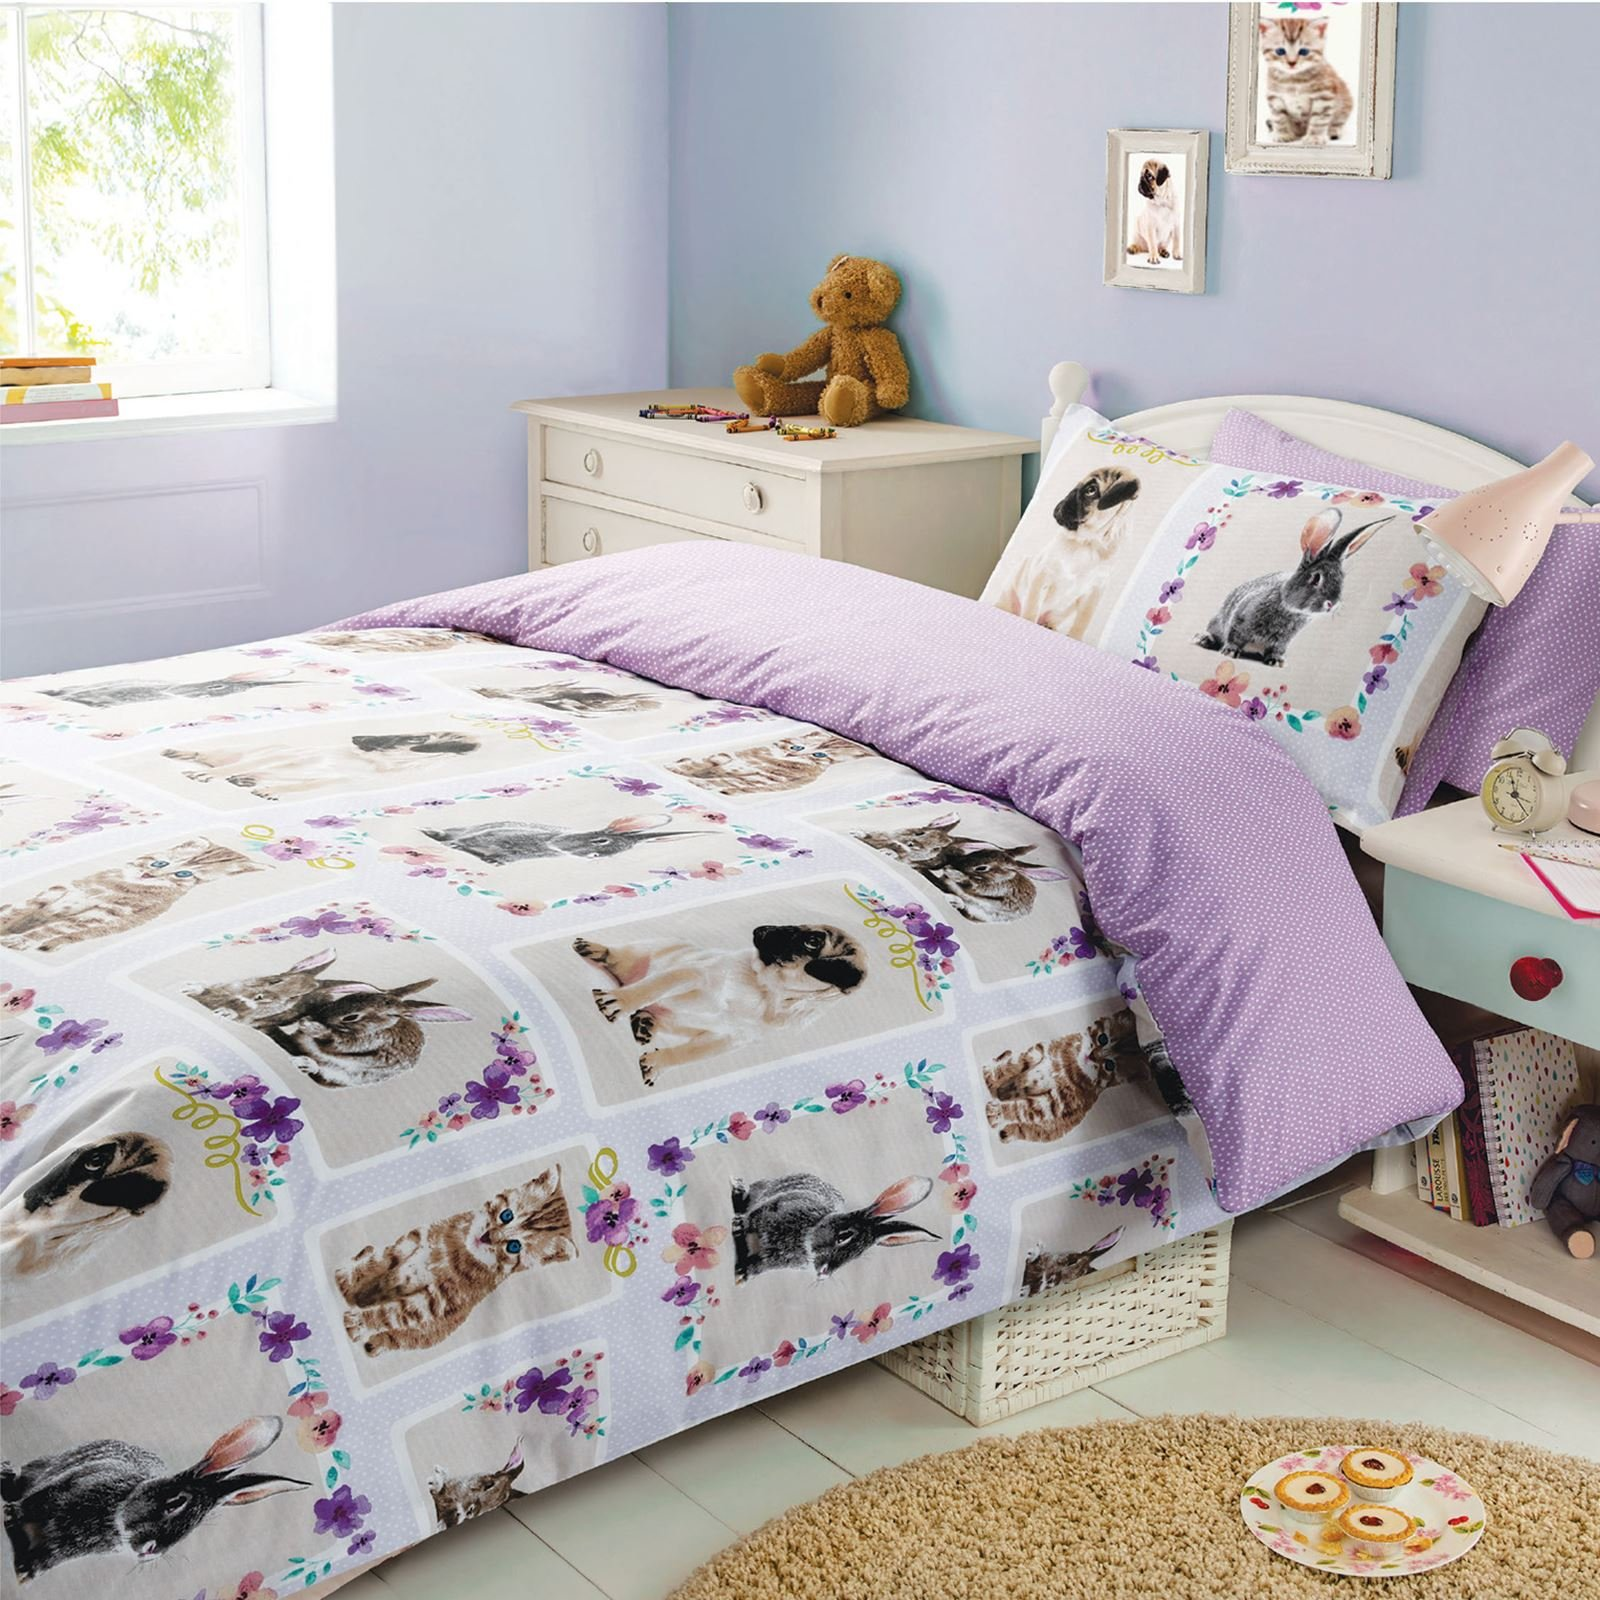 Pet Love 2 Piece UK Double /US Full Sheet Set 1 x Double Sided Sheet and 2 x Pillowcases Multi